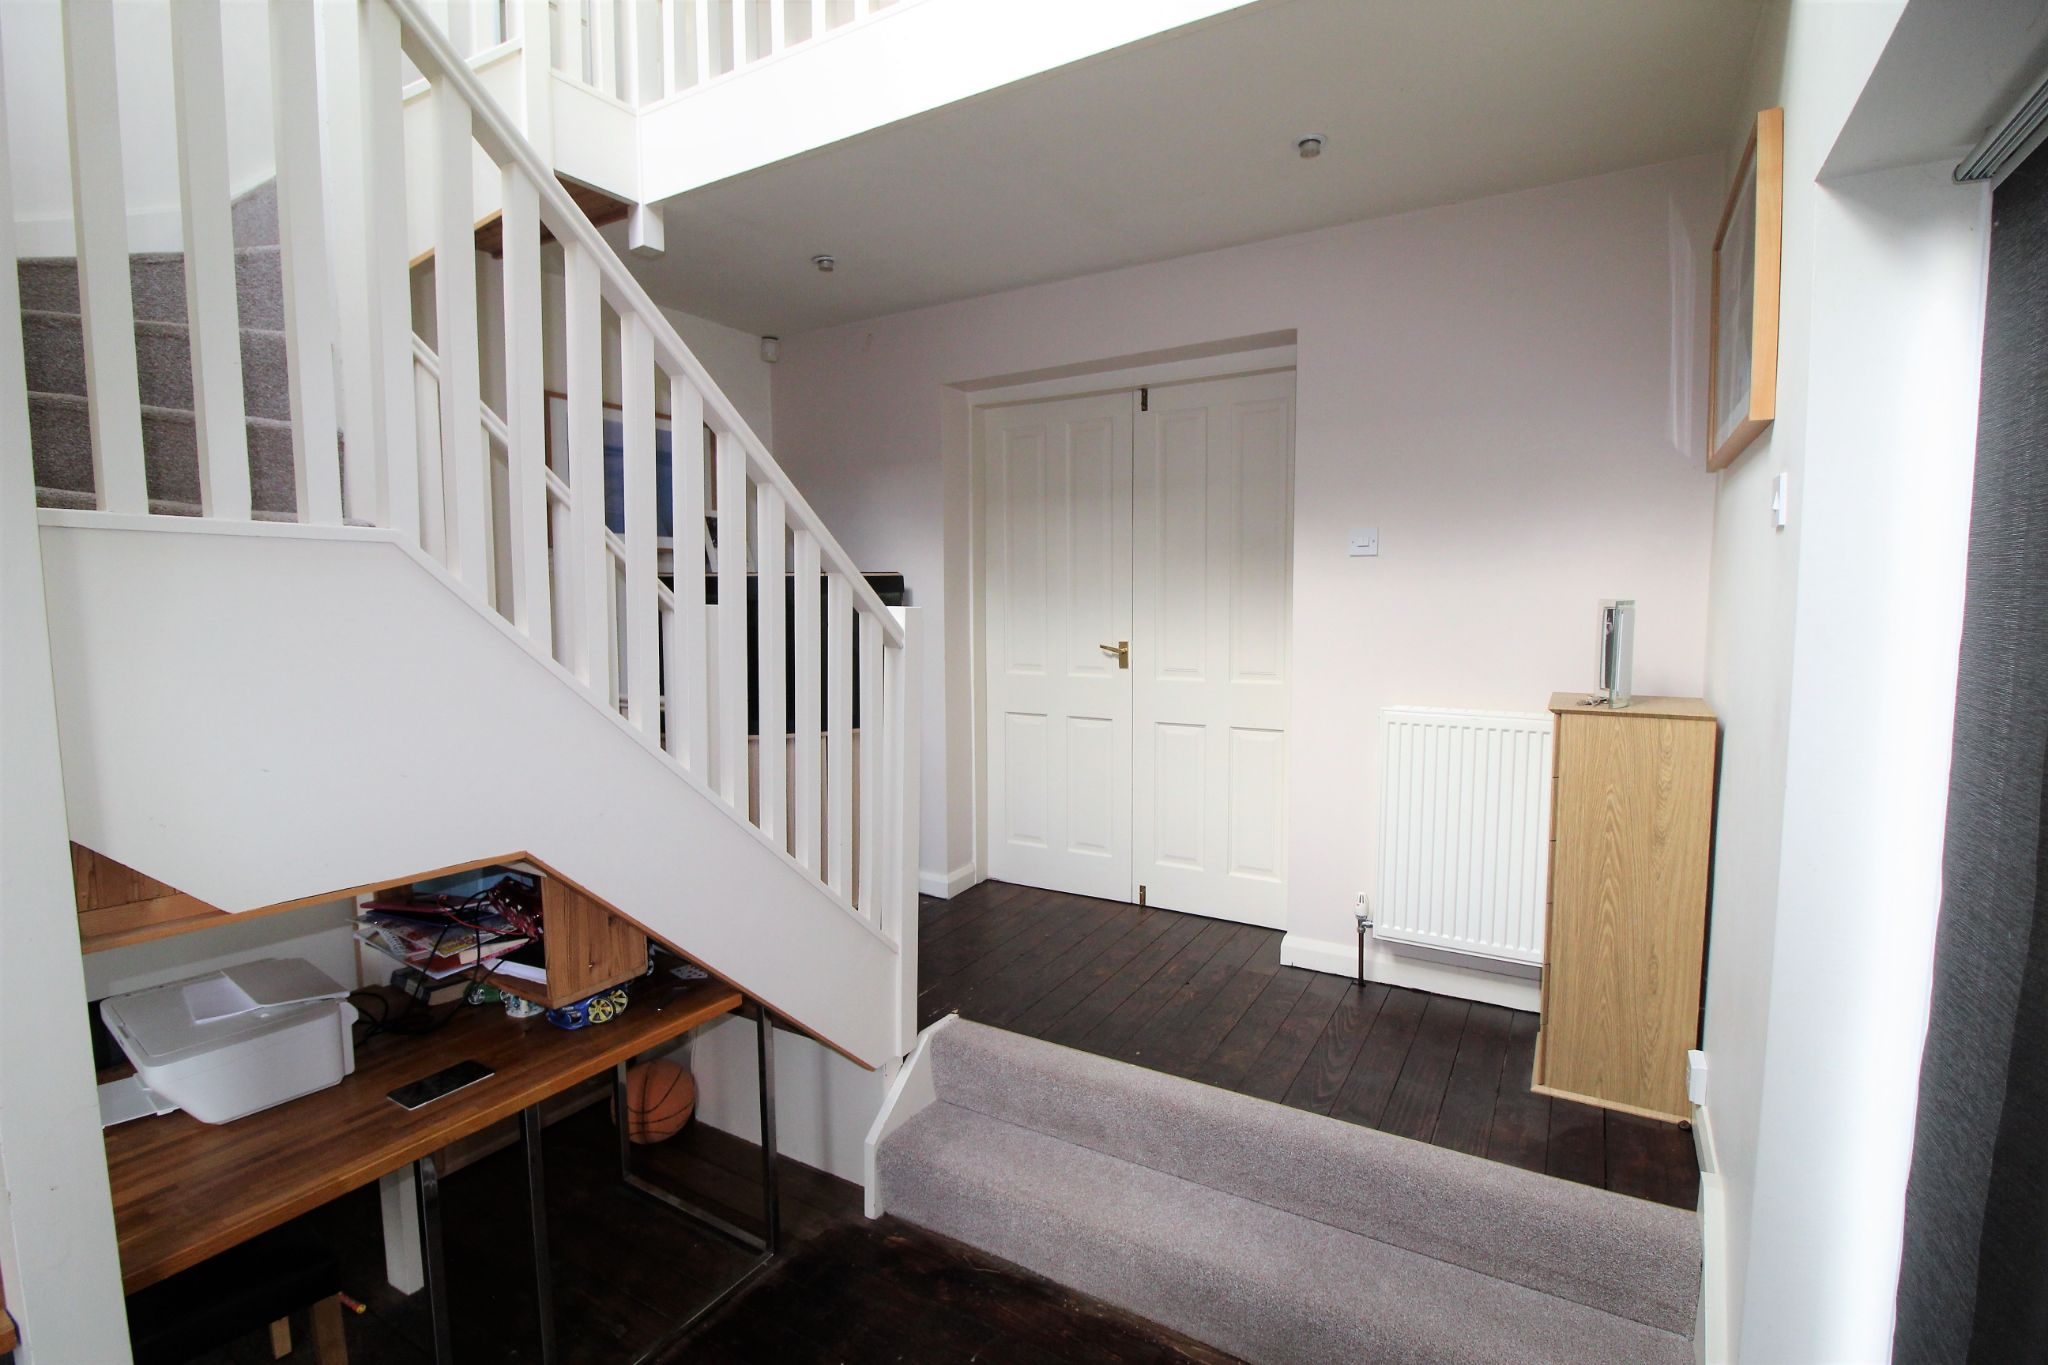 3 bedroom detached house Let in Brighouse - Ground floor hallway / office space